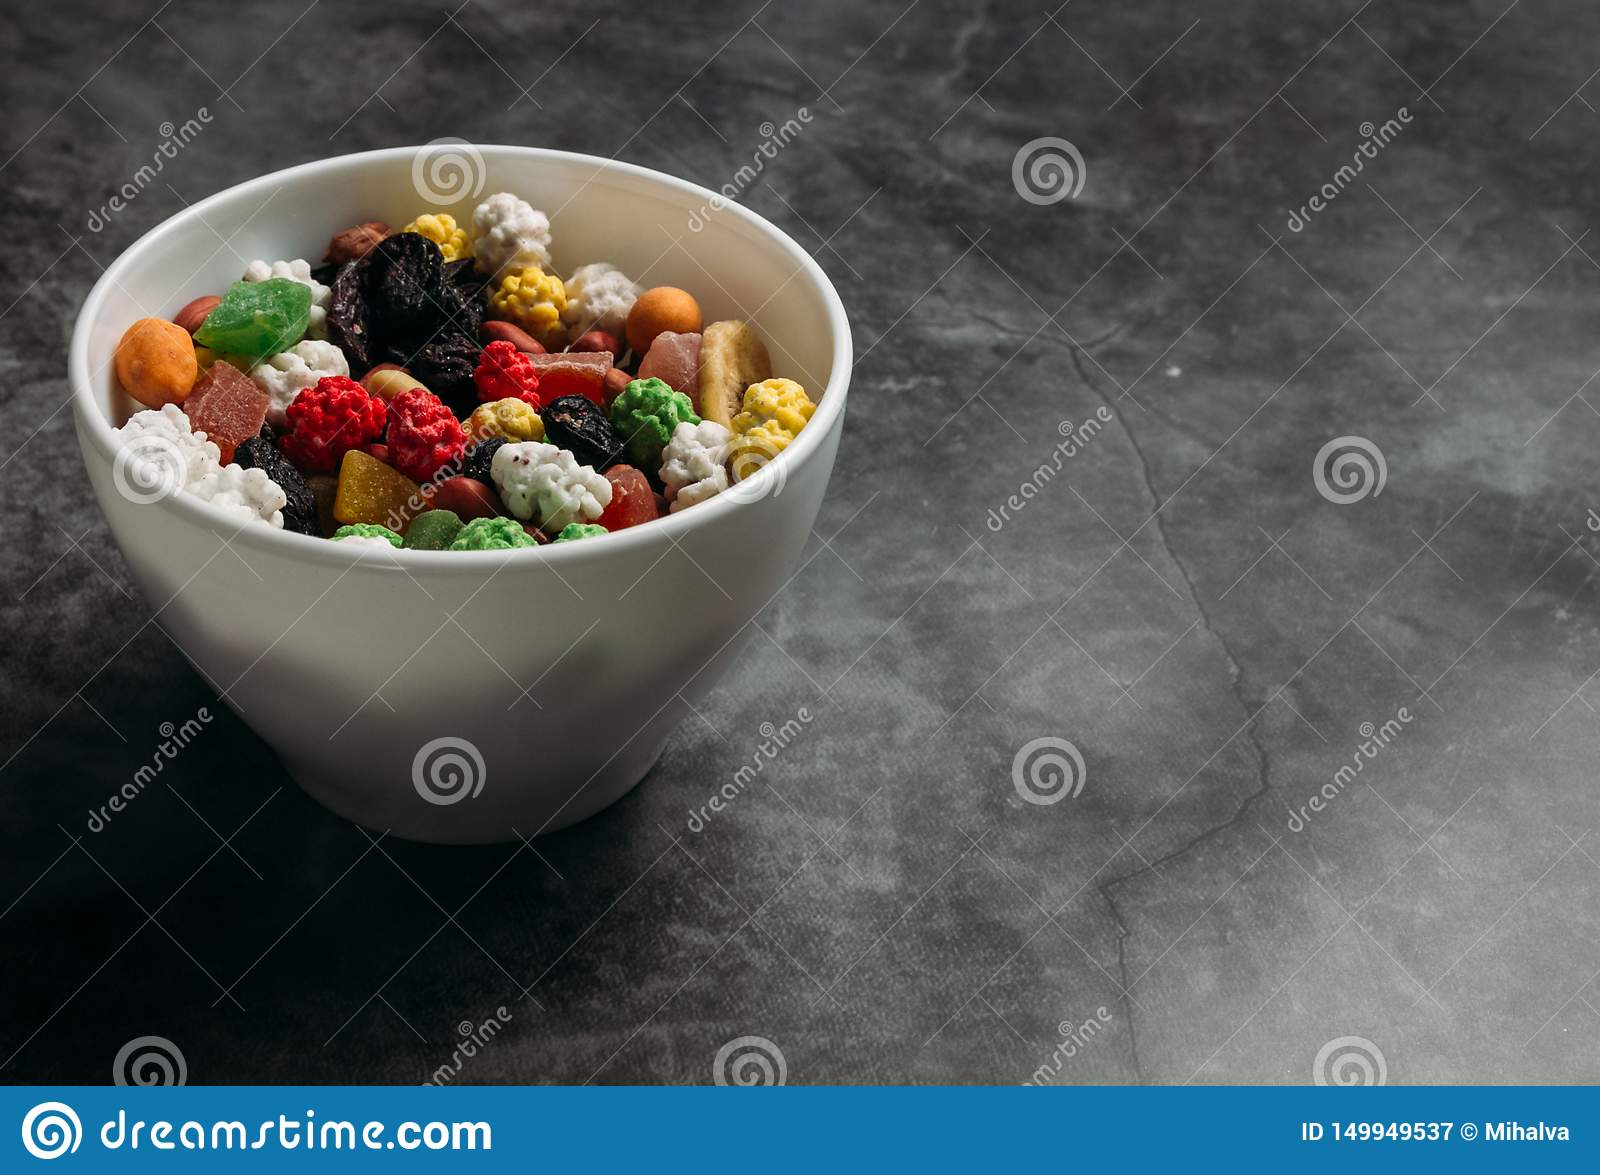 The mixed dried fruits in a bowl